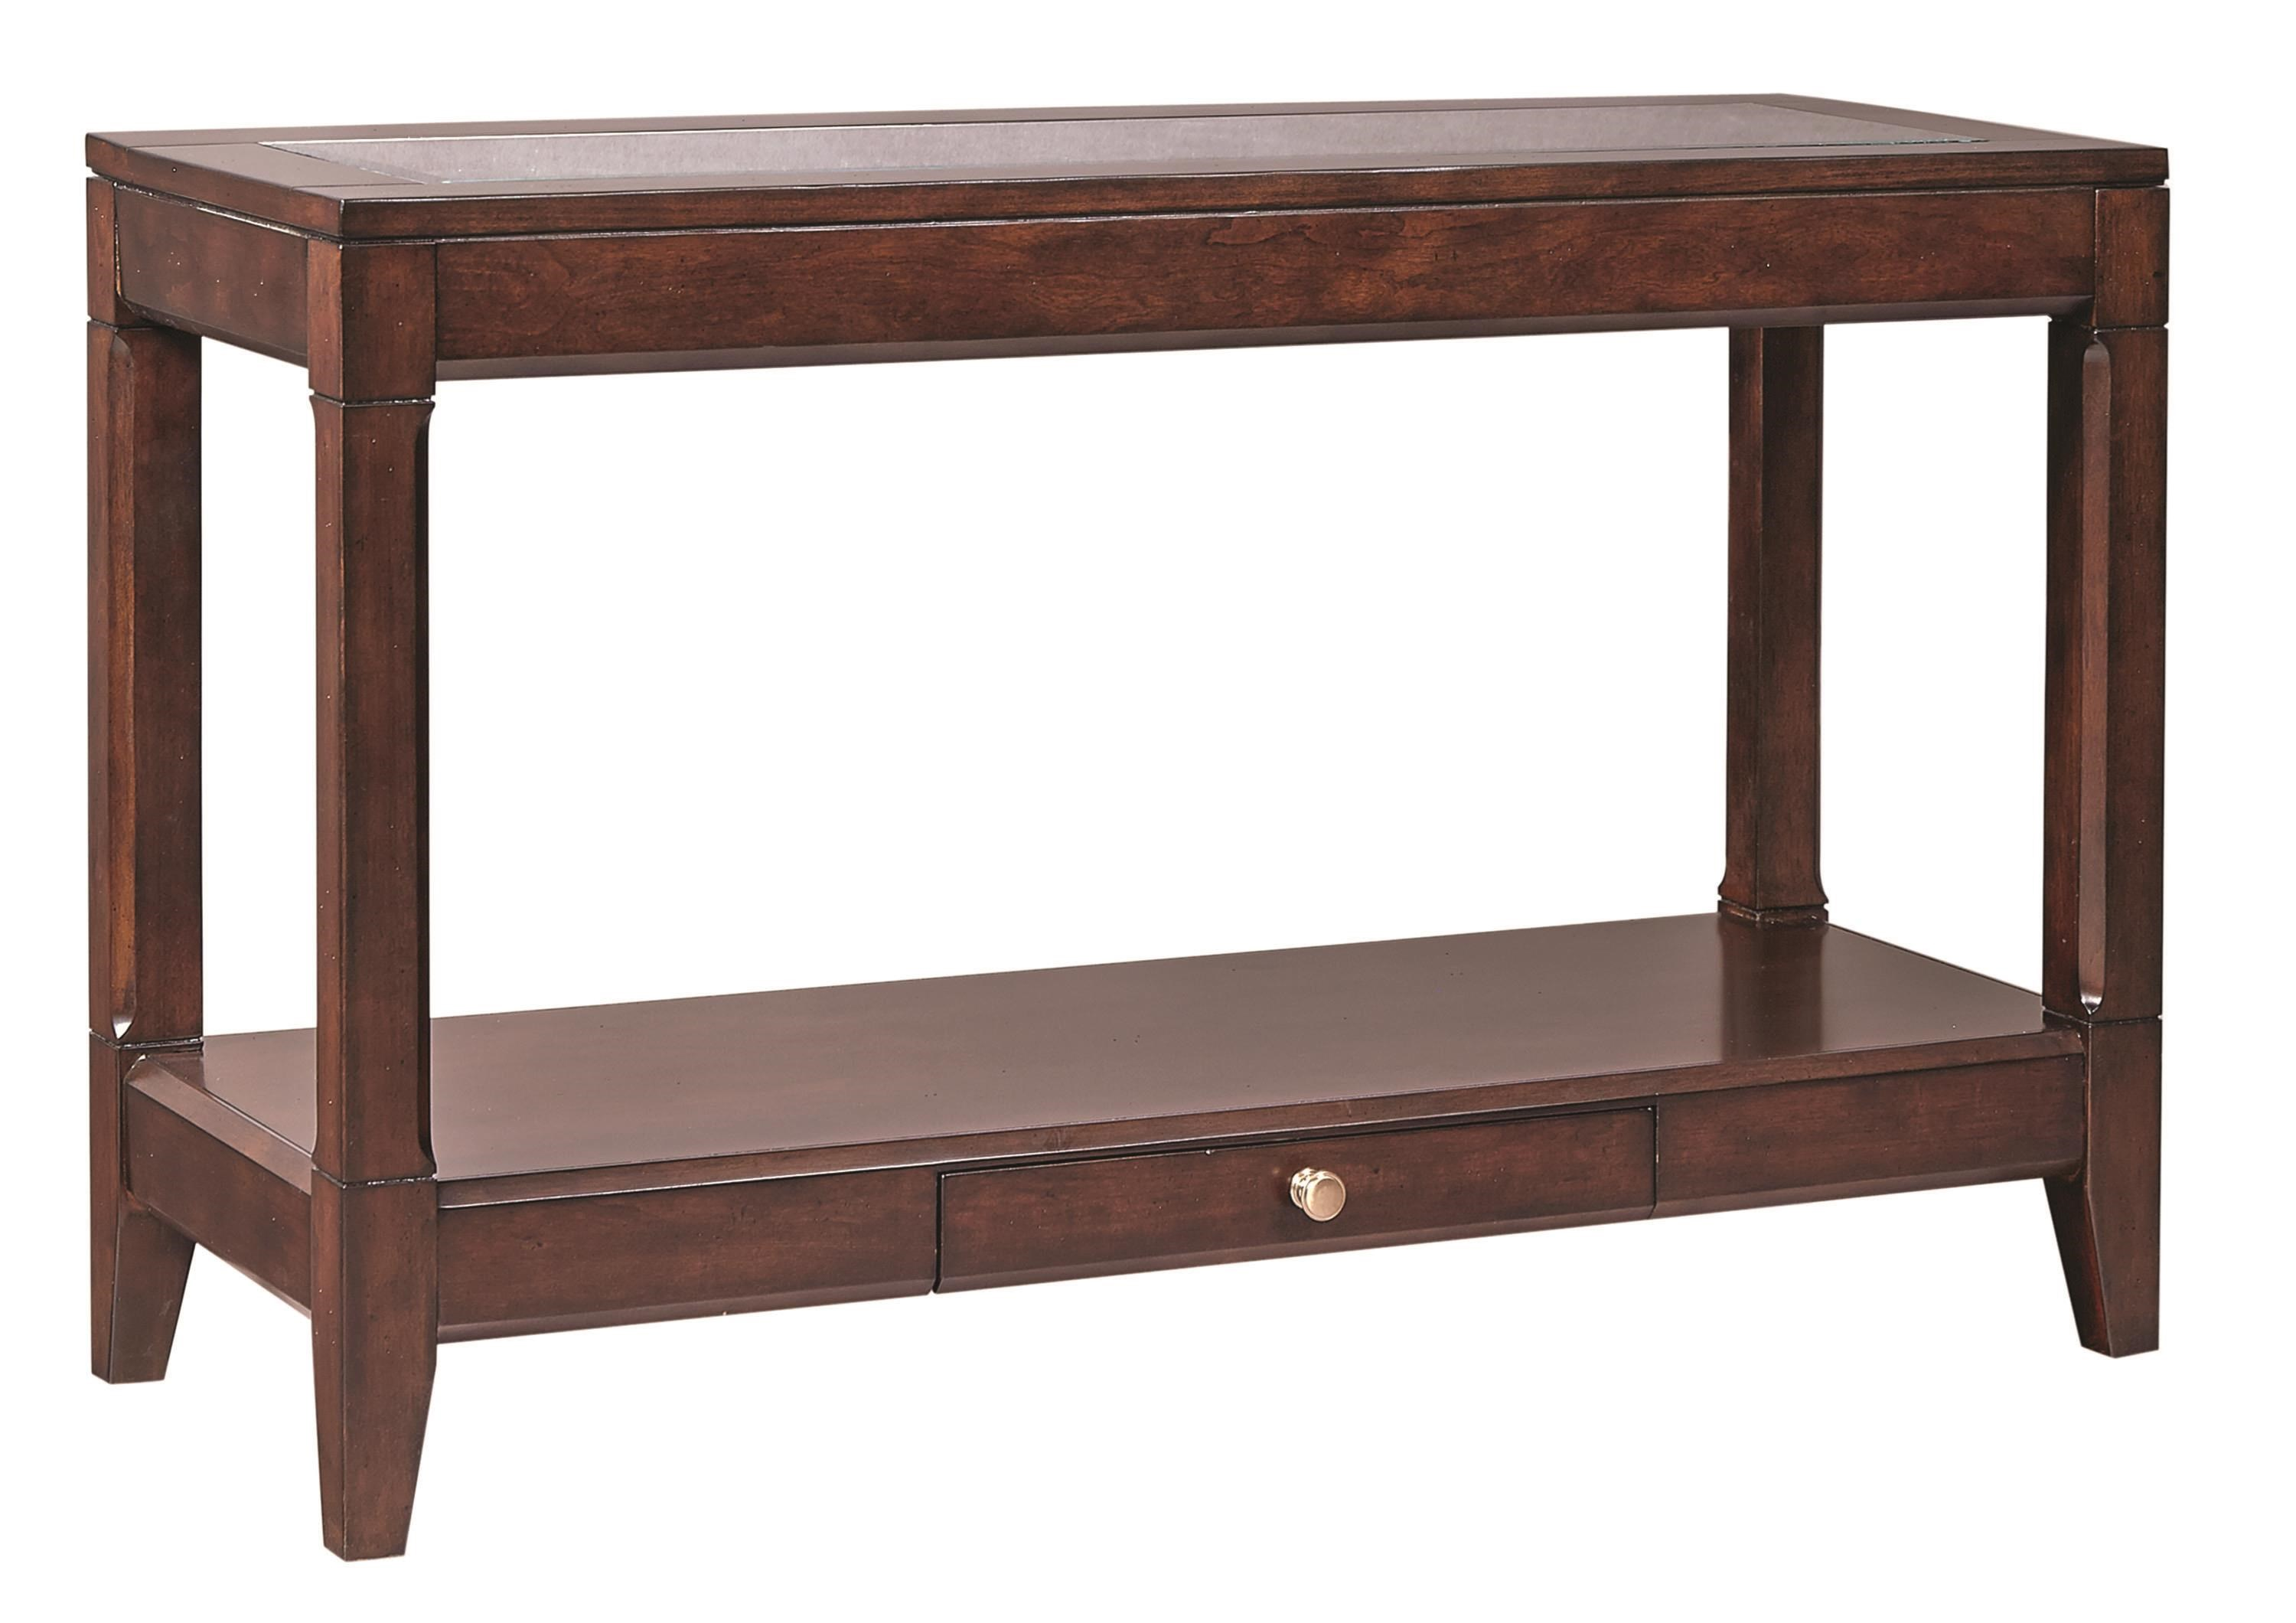 Morris Home Furnishings Atlas Atlas Sofa Table - Item Number: 748171205